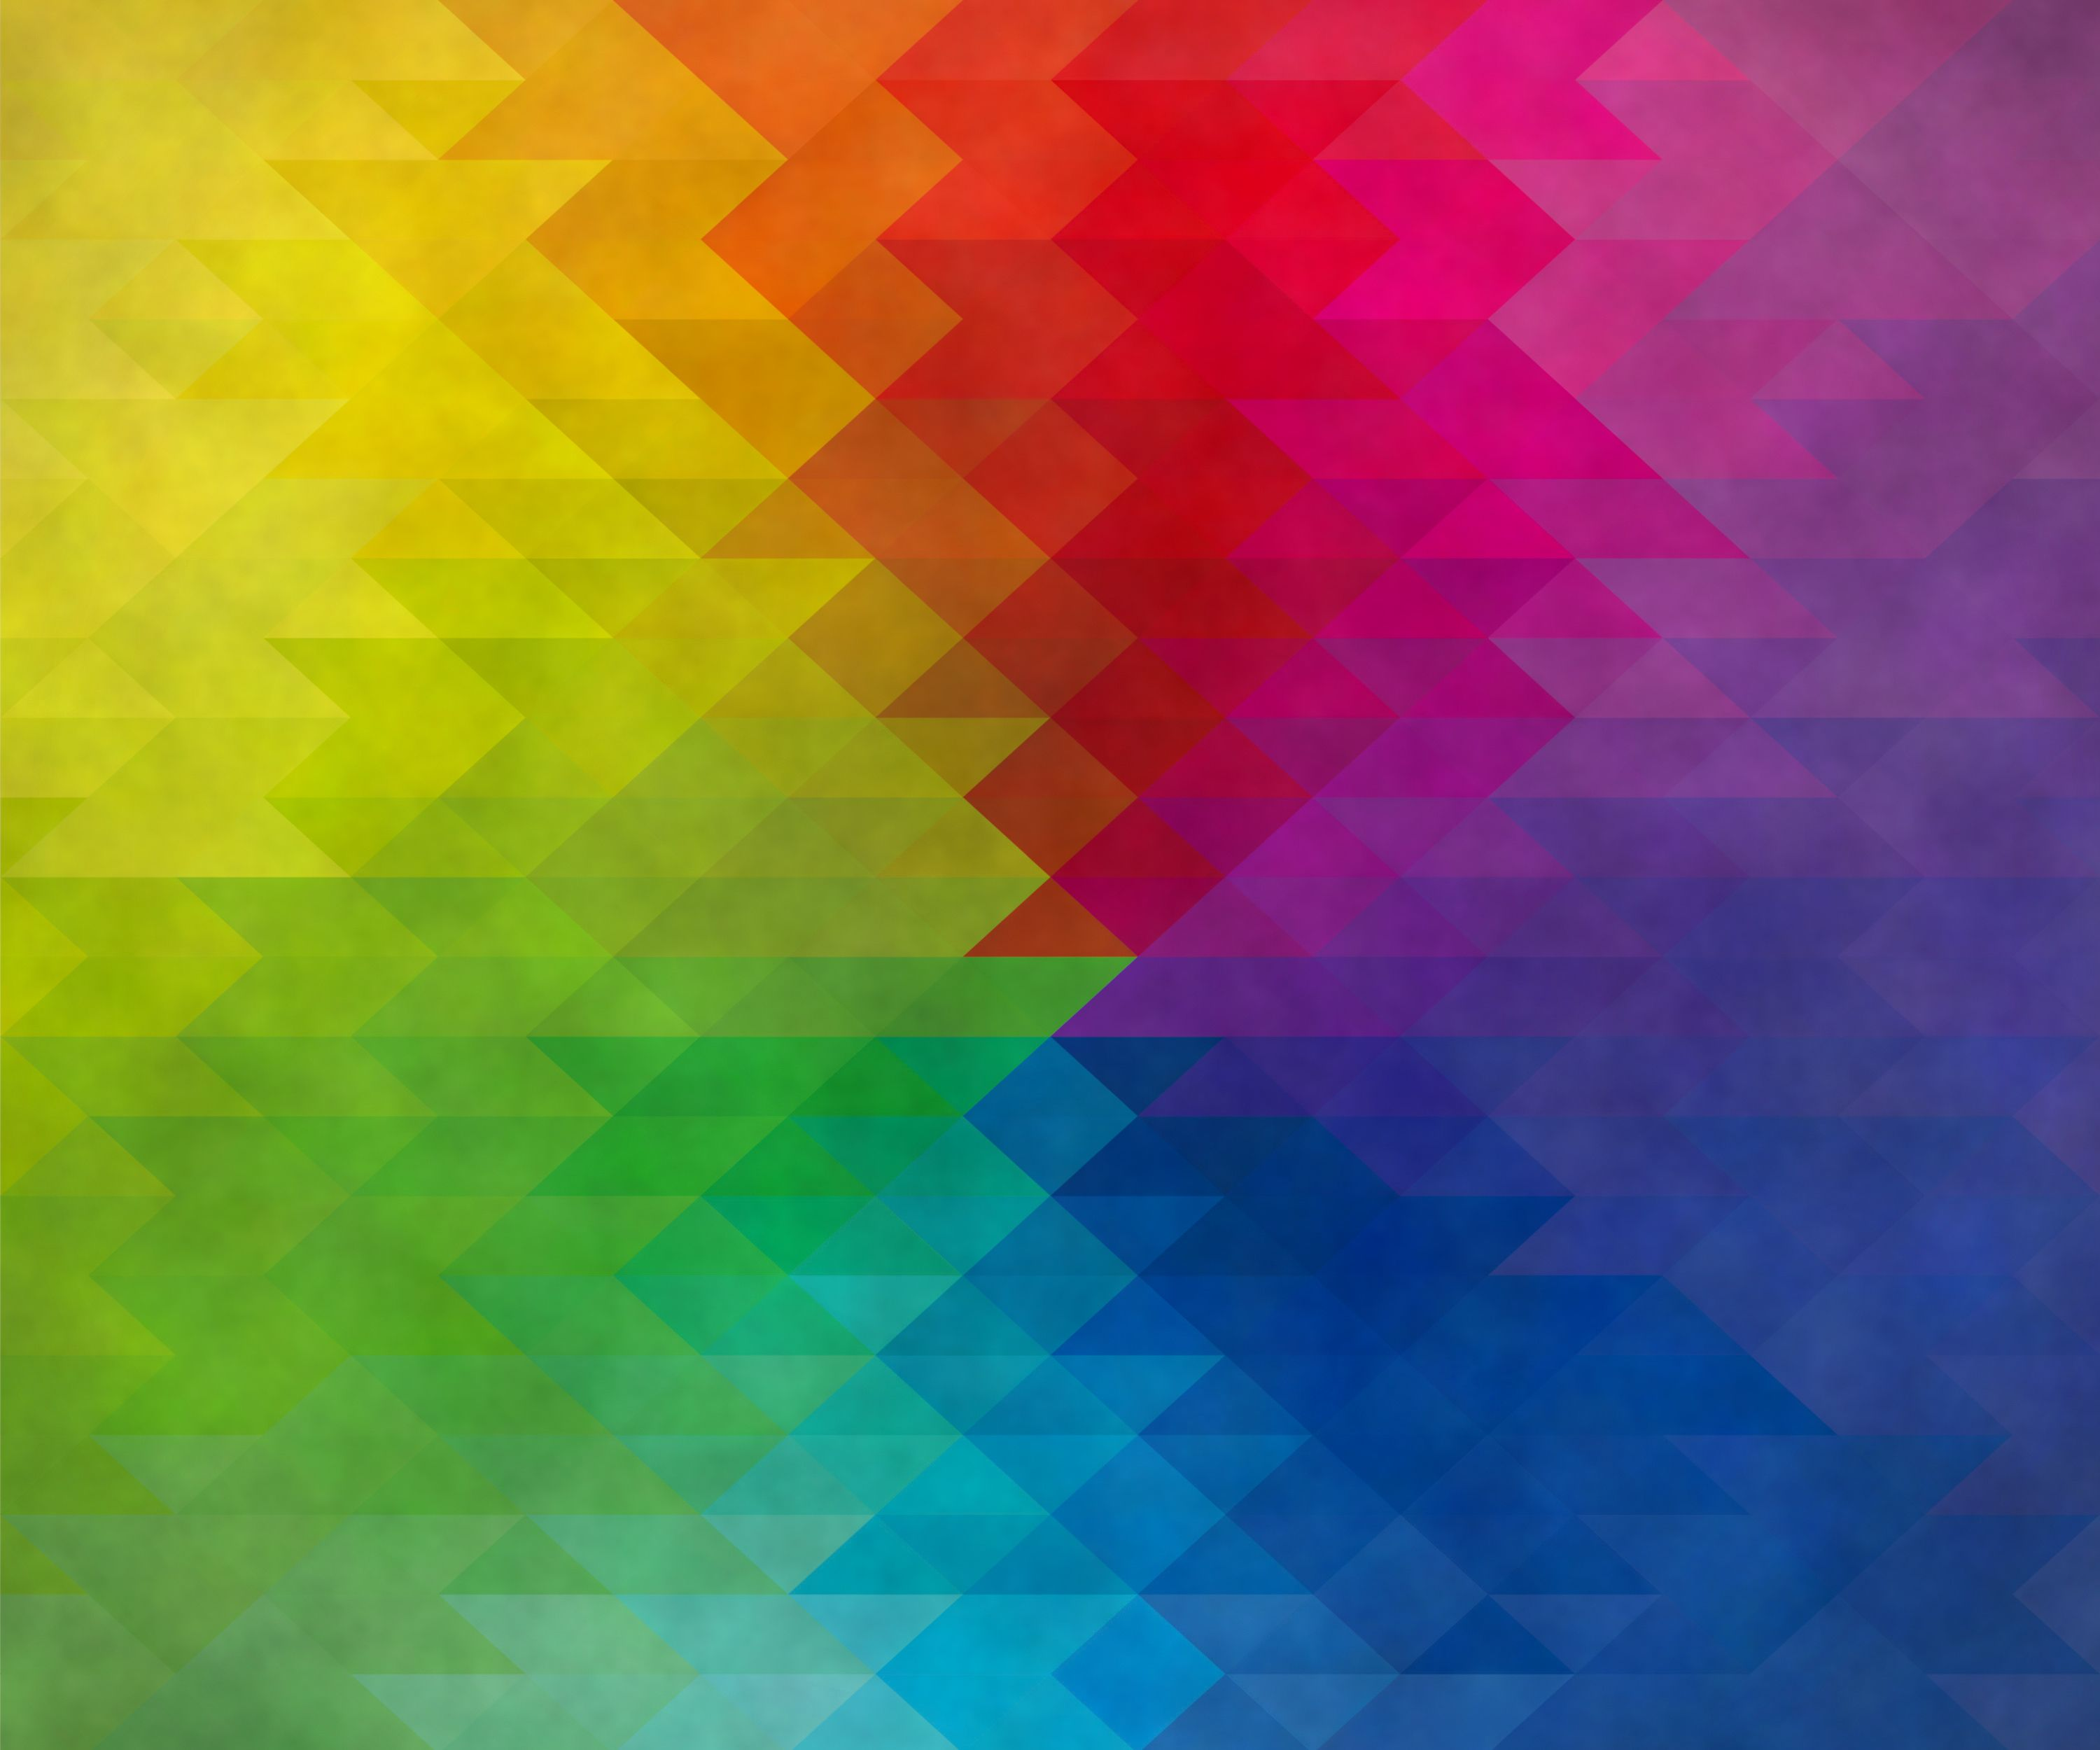 Abstract-creative-colored-squares-gradiant-desktop-hd-wall